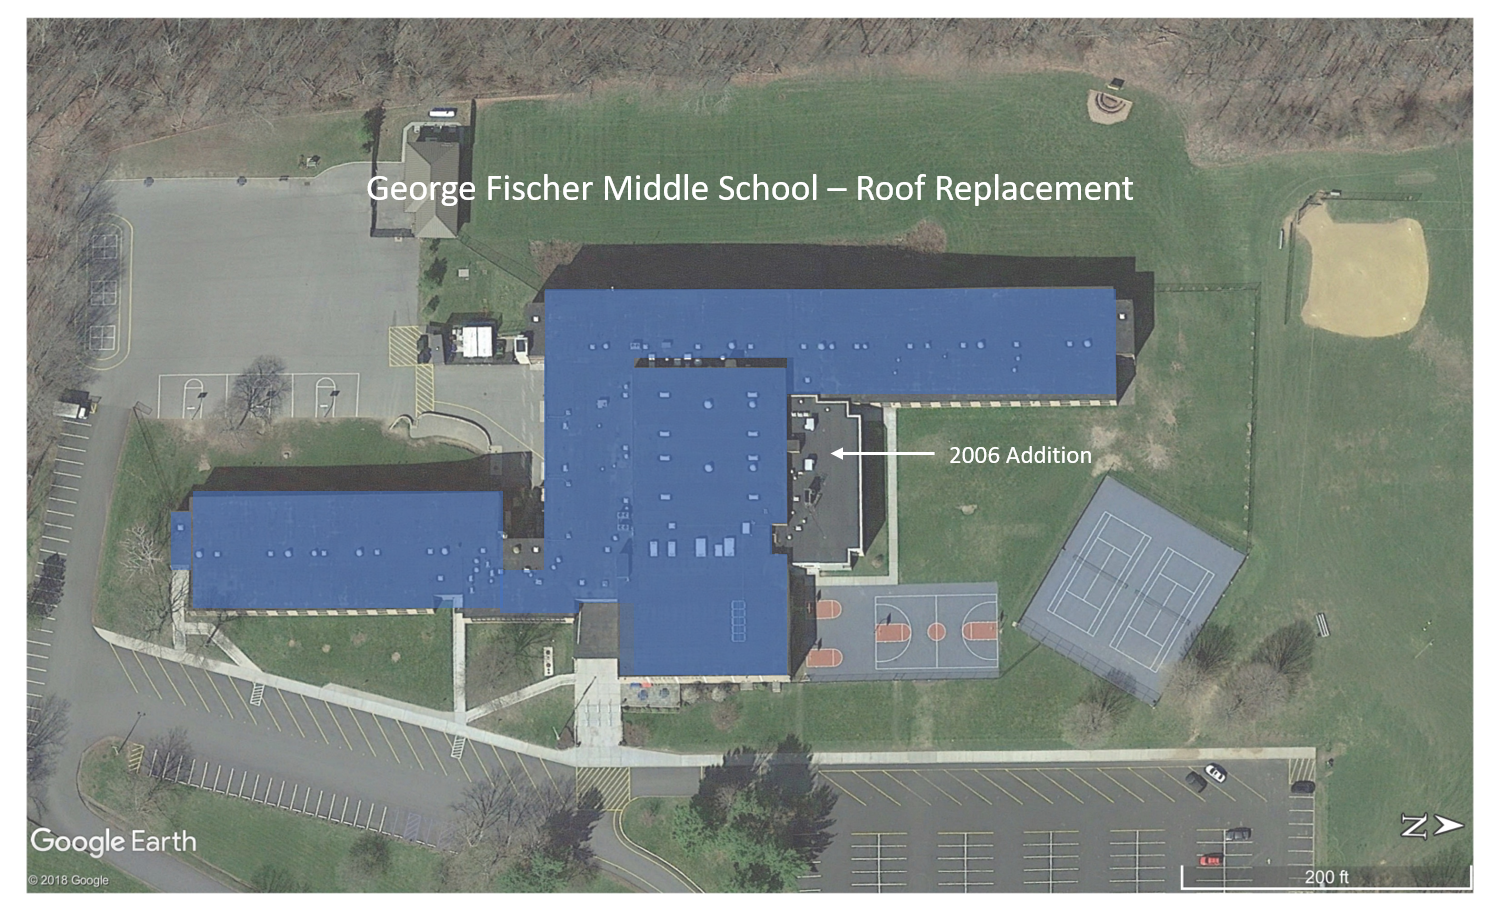 George Fischer Middle School (replacement sections are shown in blue)